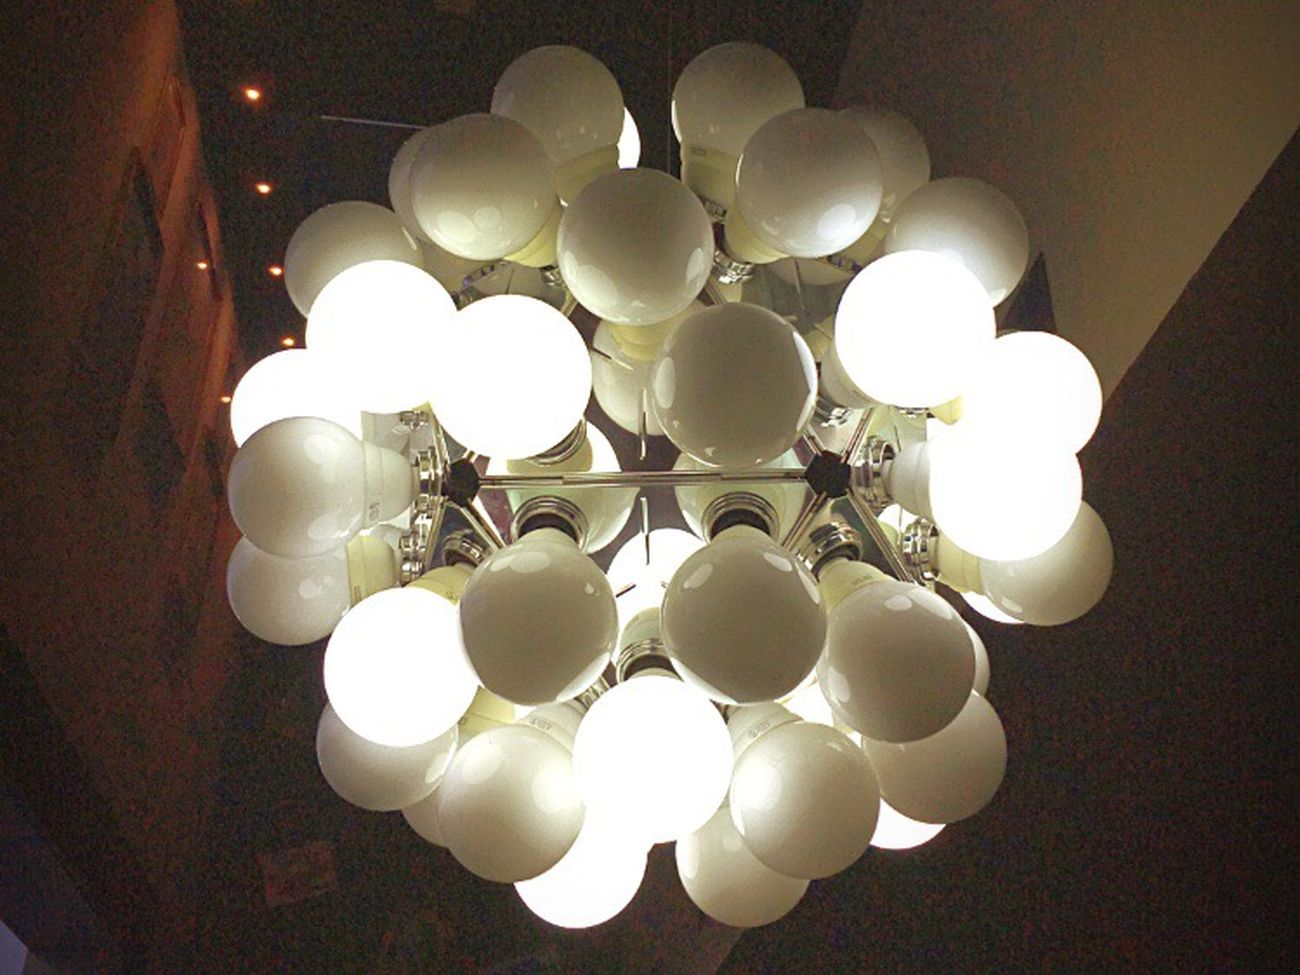 Lamps Lampshade Lampshades Lamps, Lamps And Lighting Lamps And Shadows Lamps Collection Lamps And Lights. Lamp Lamp